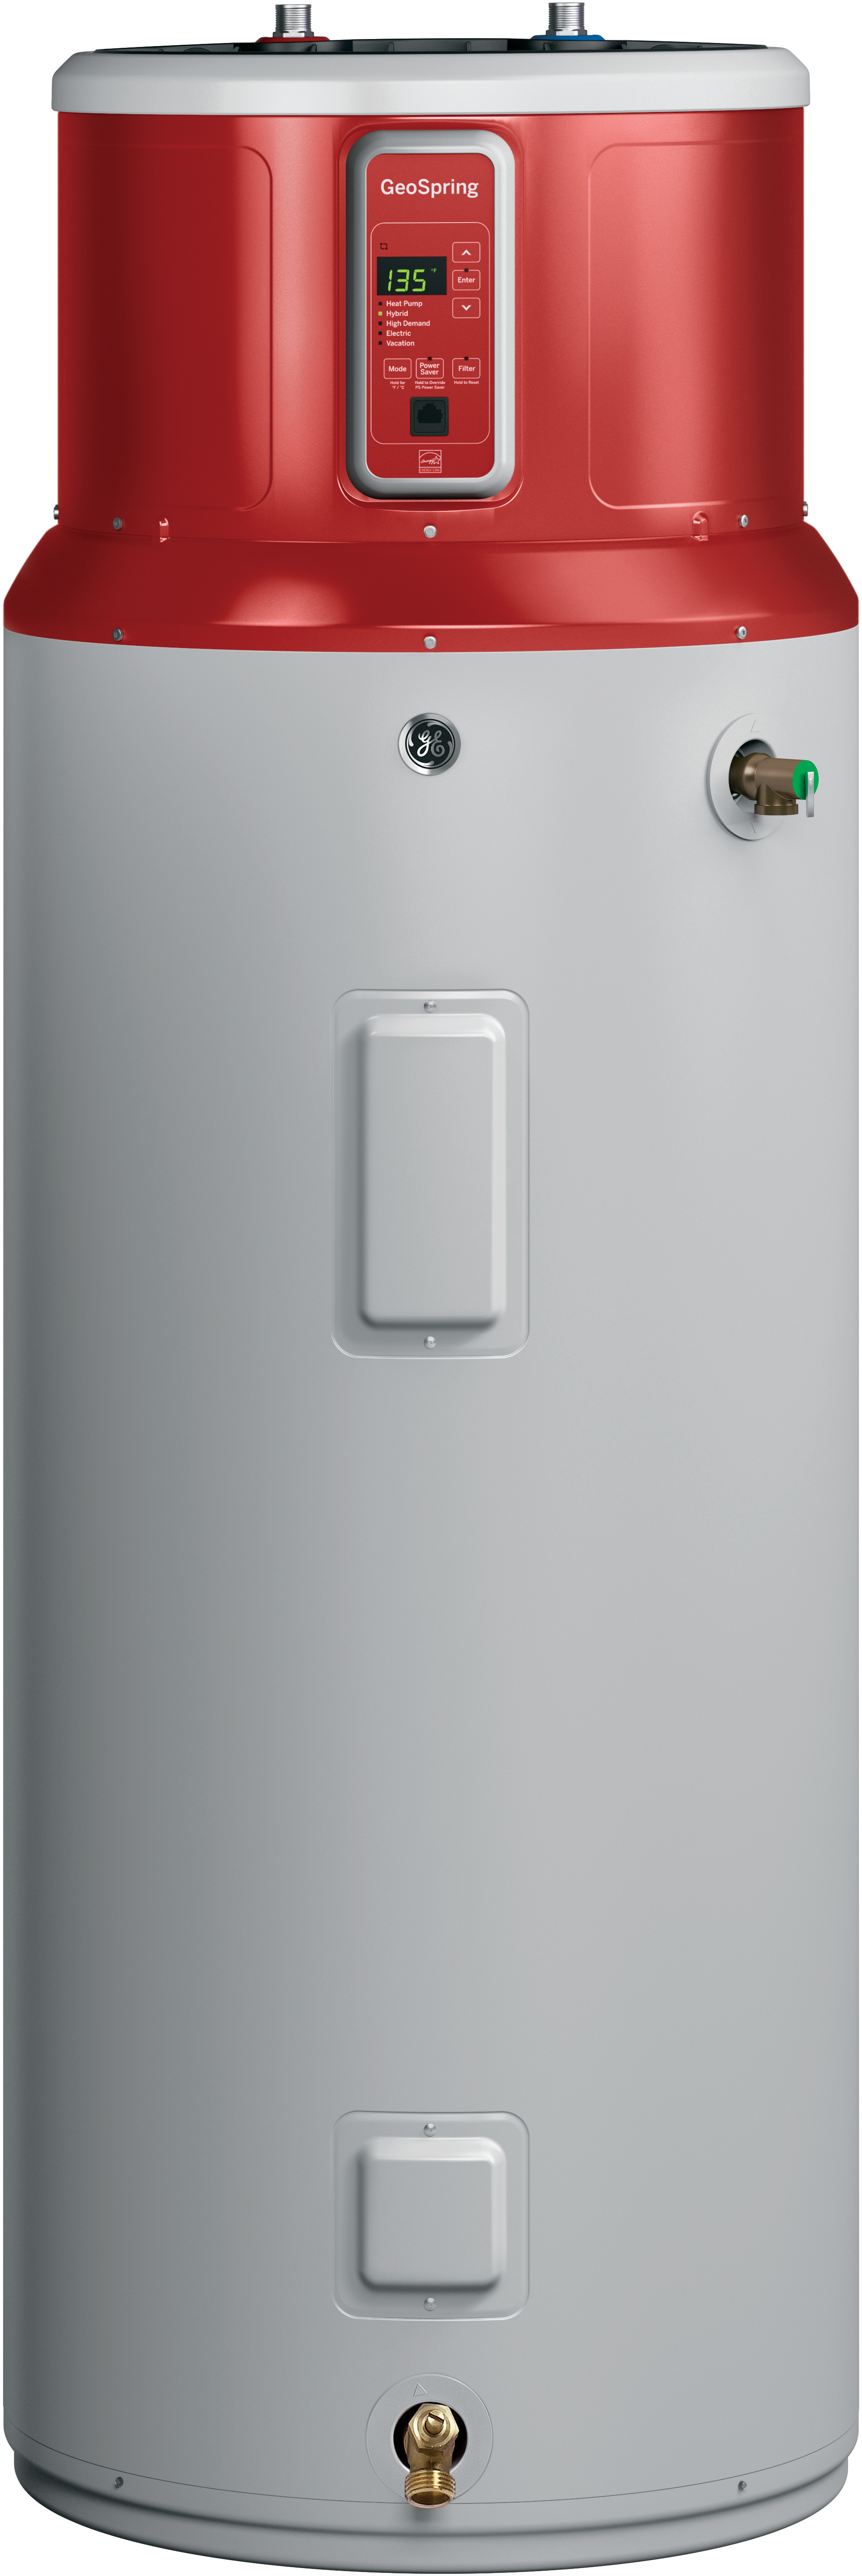 Ge Introduces 80 Gallon Geospring Hybrid Electric Water Heater Made In Louisville Ky Business Wire